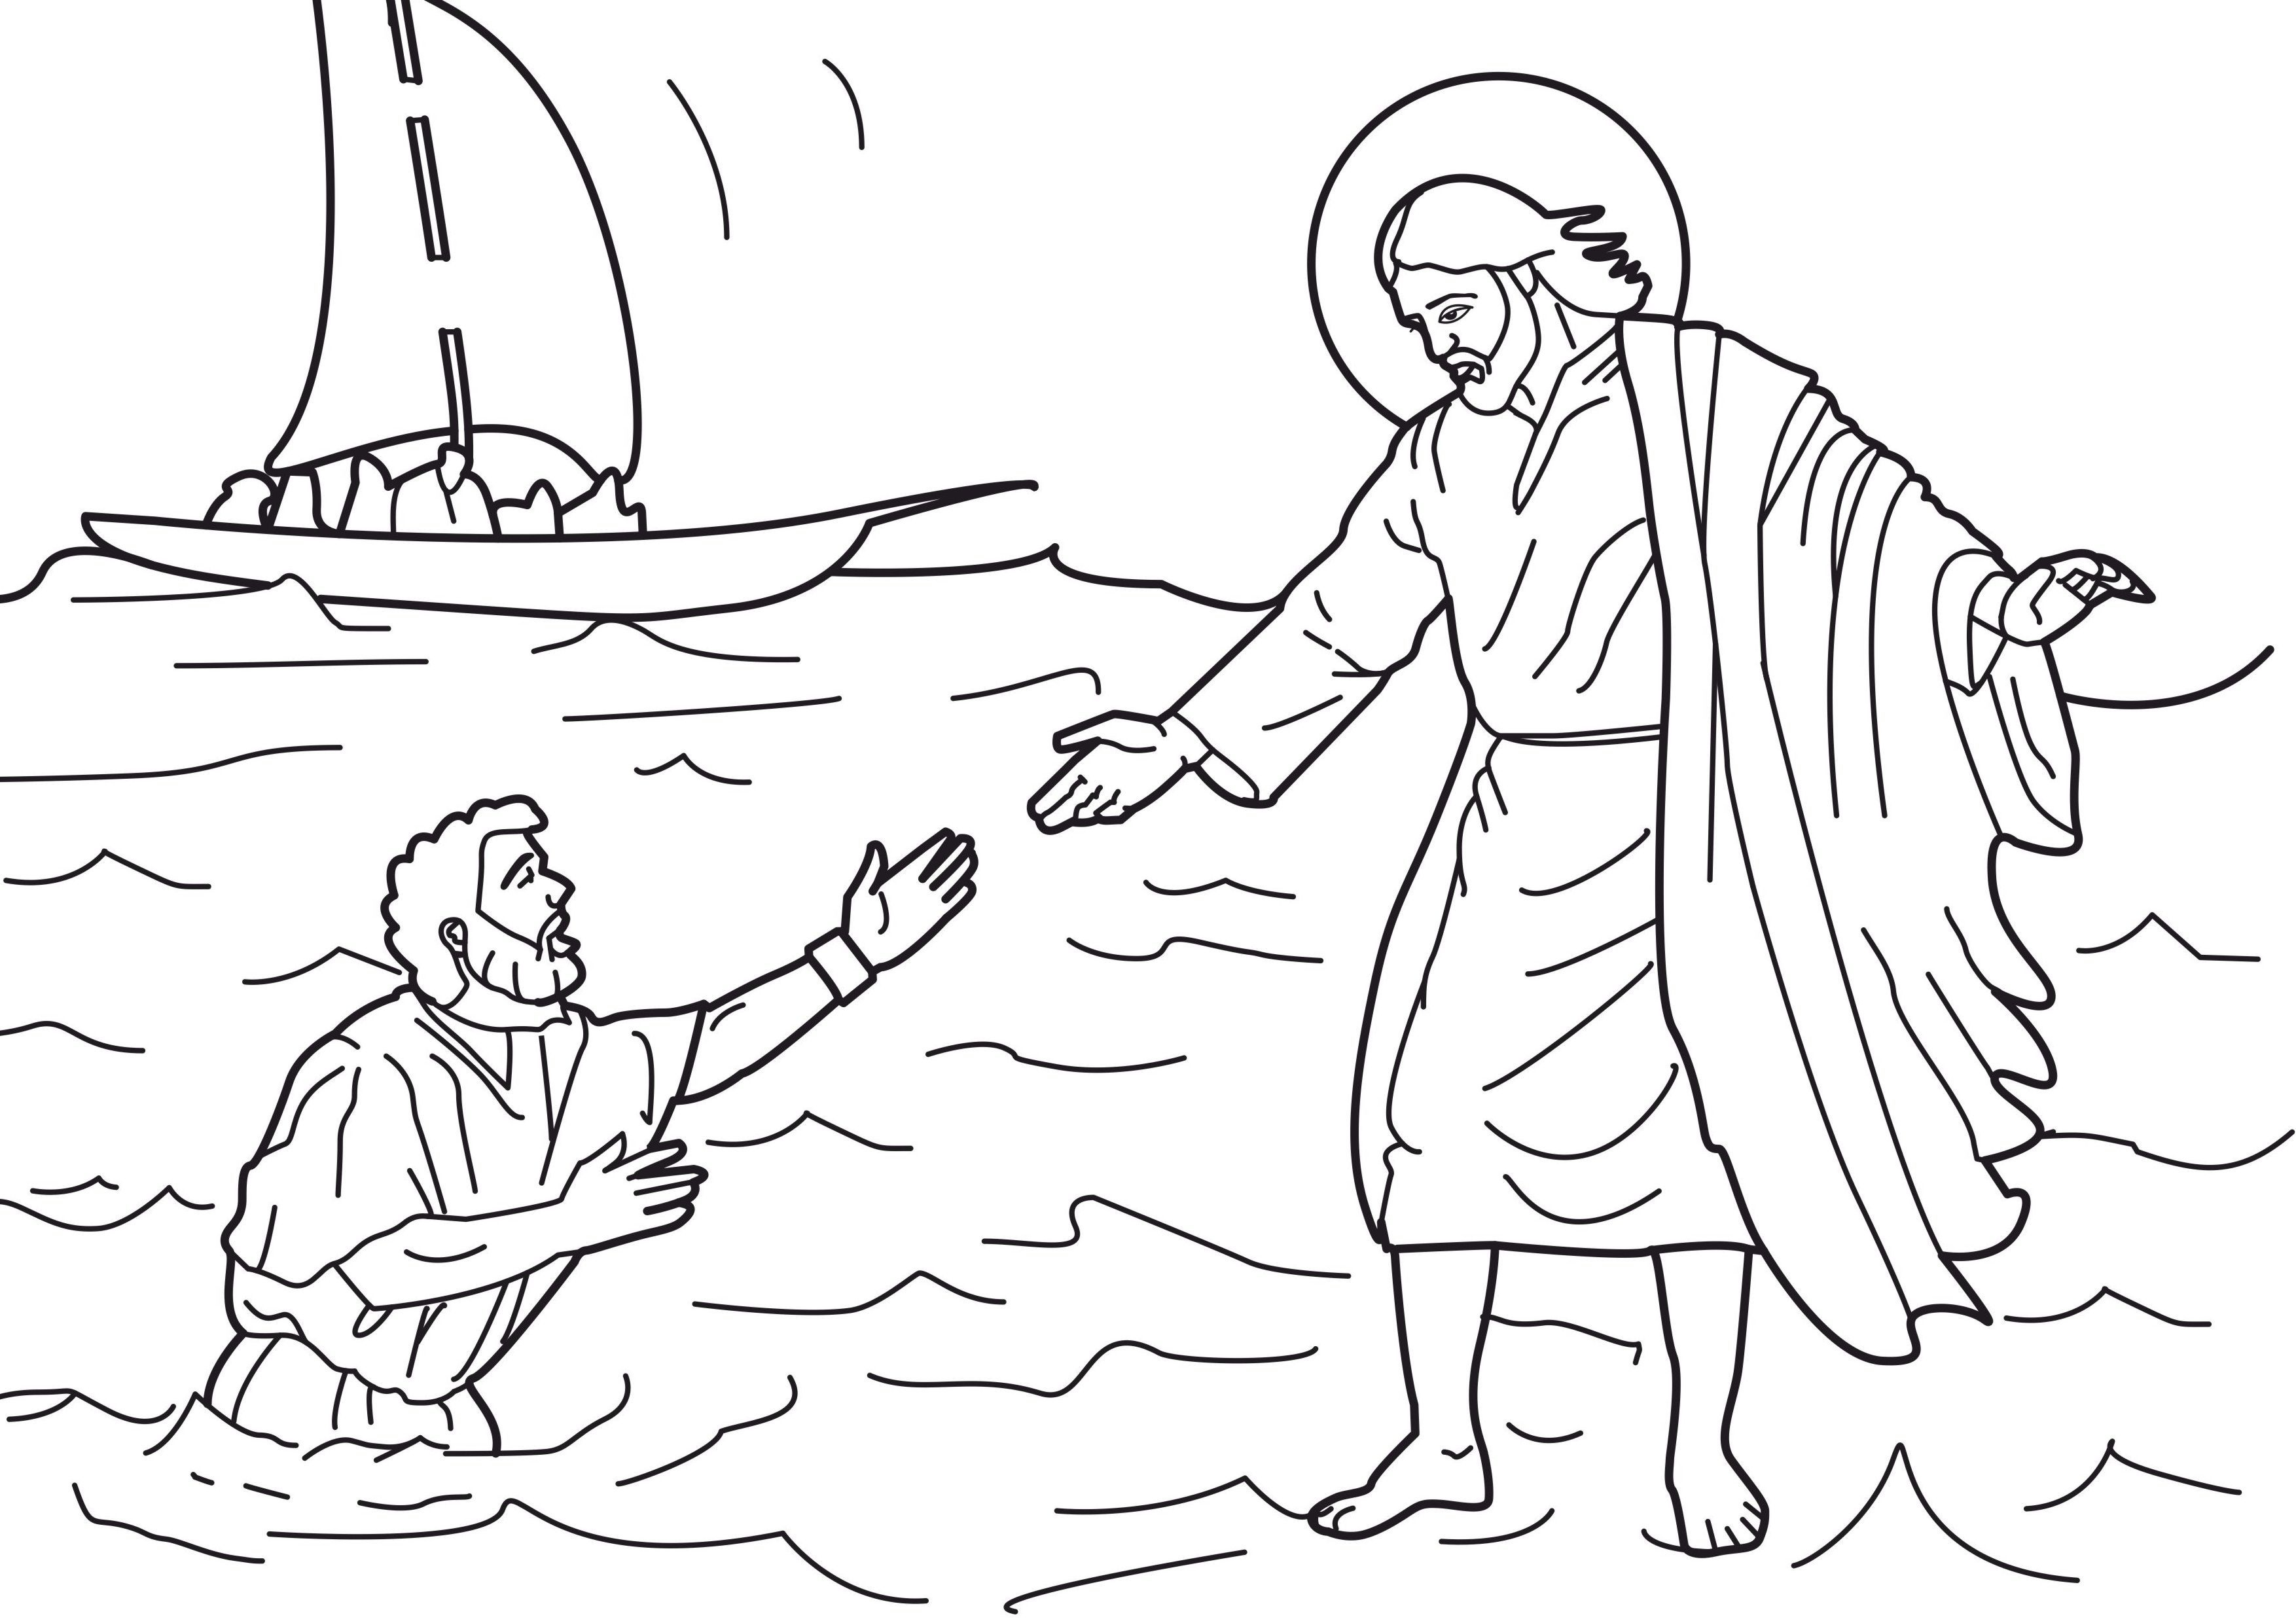 Free Printable Jesus Coloring Pages For Kids | Sunday School | Jesus - Free Printable Jesus Coloring Pages